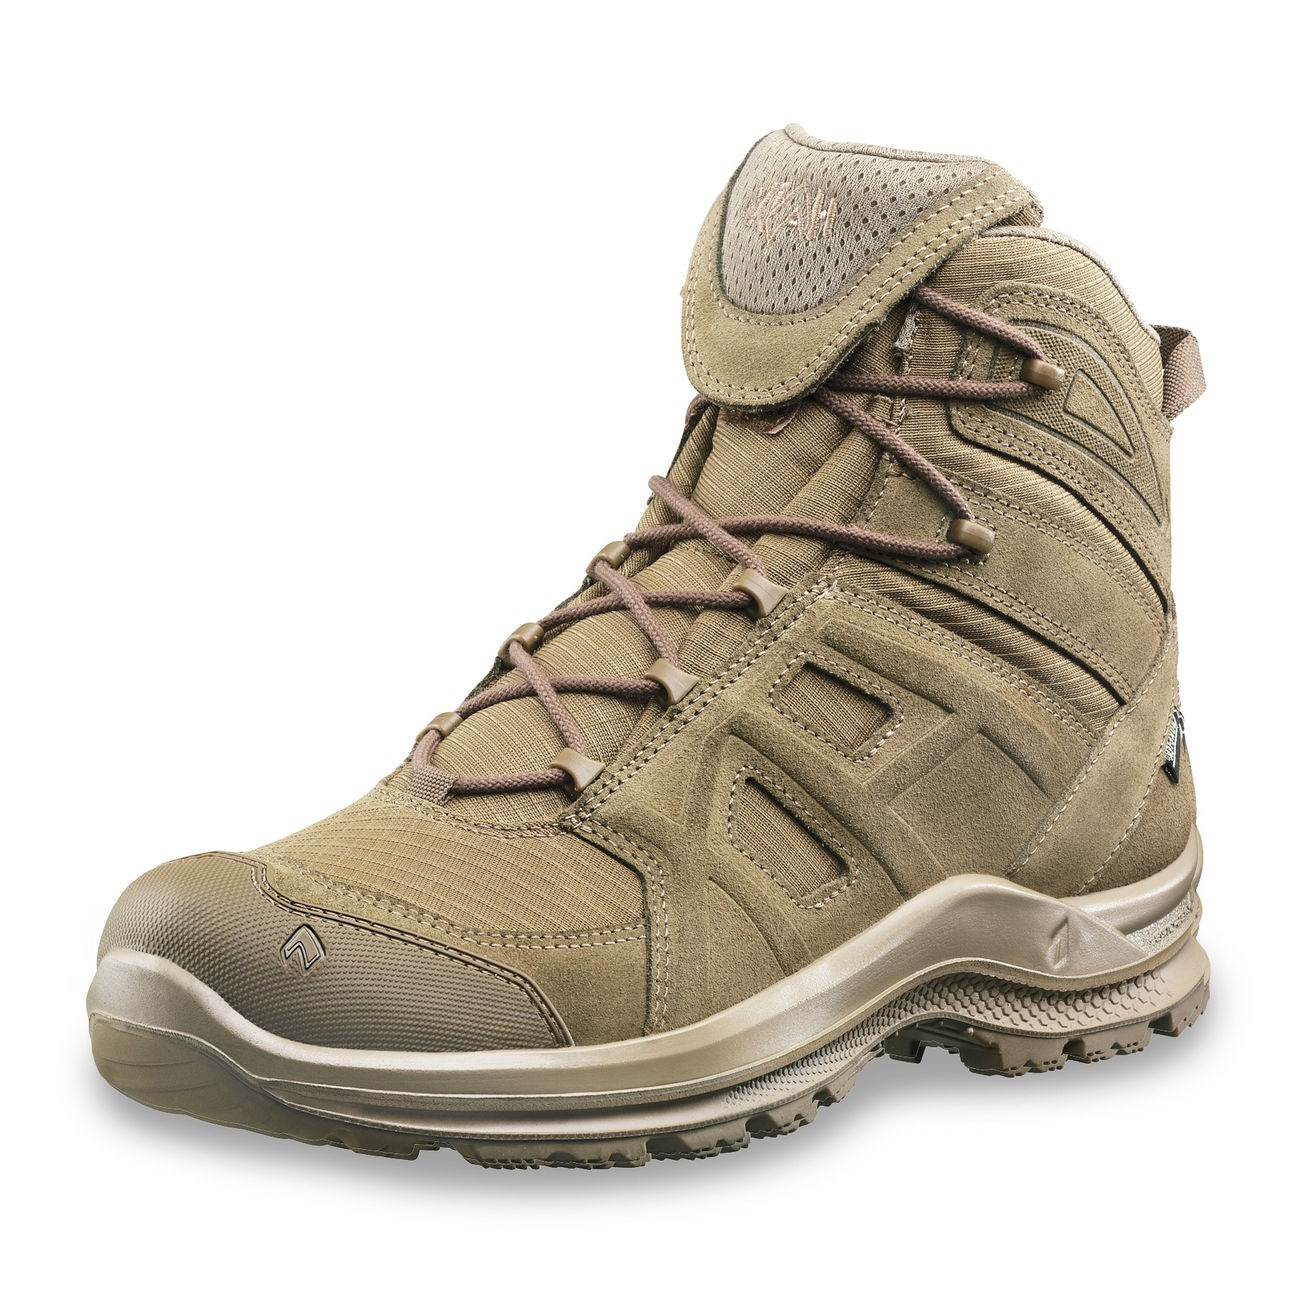 Topánky BLACK EAGLE TACTICAL 2.0 MID COYOTE